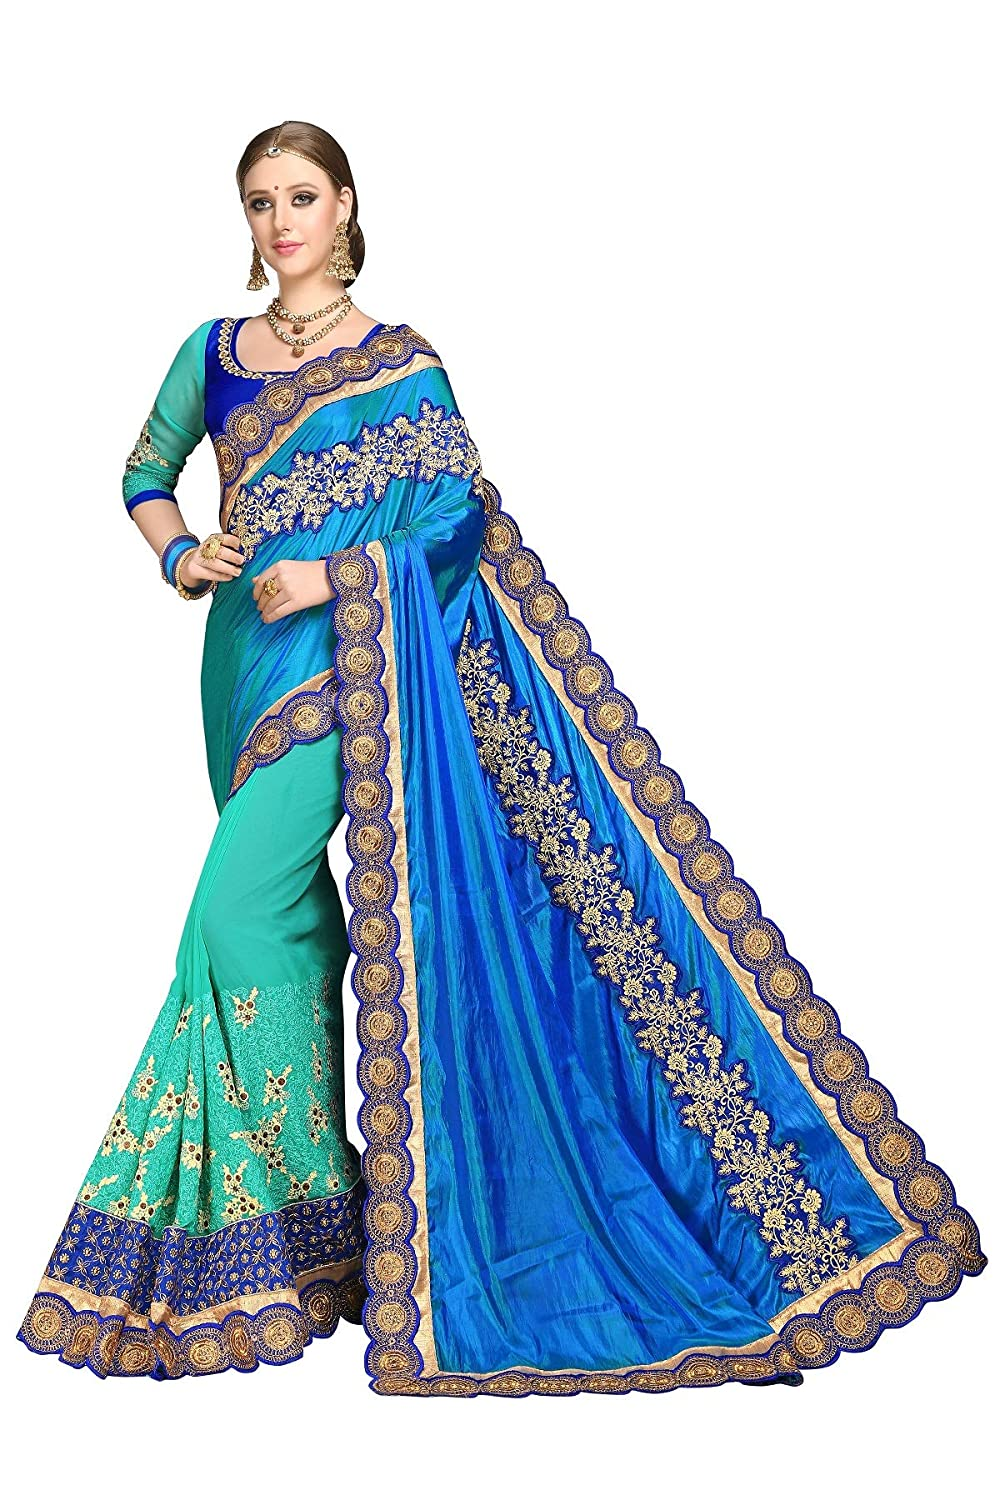 bluee 1 Riva Fashion Sarees for Women l Indian Wedding Ethnic Wear Sari & Blouse Piece.